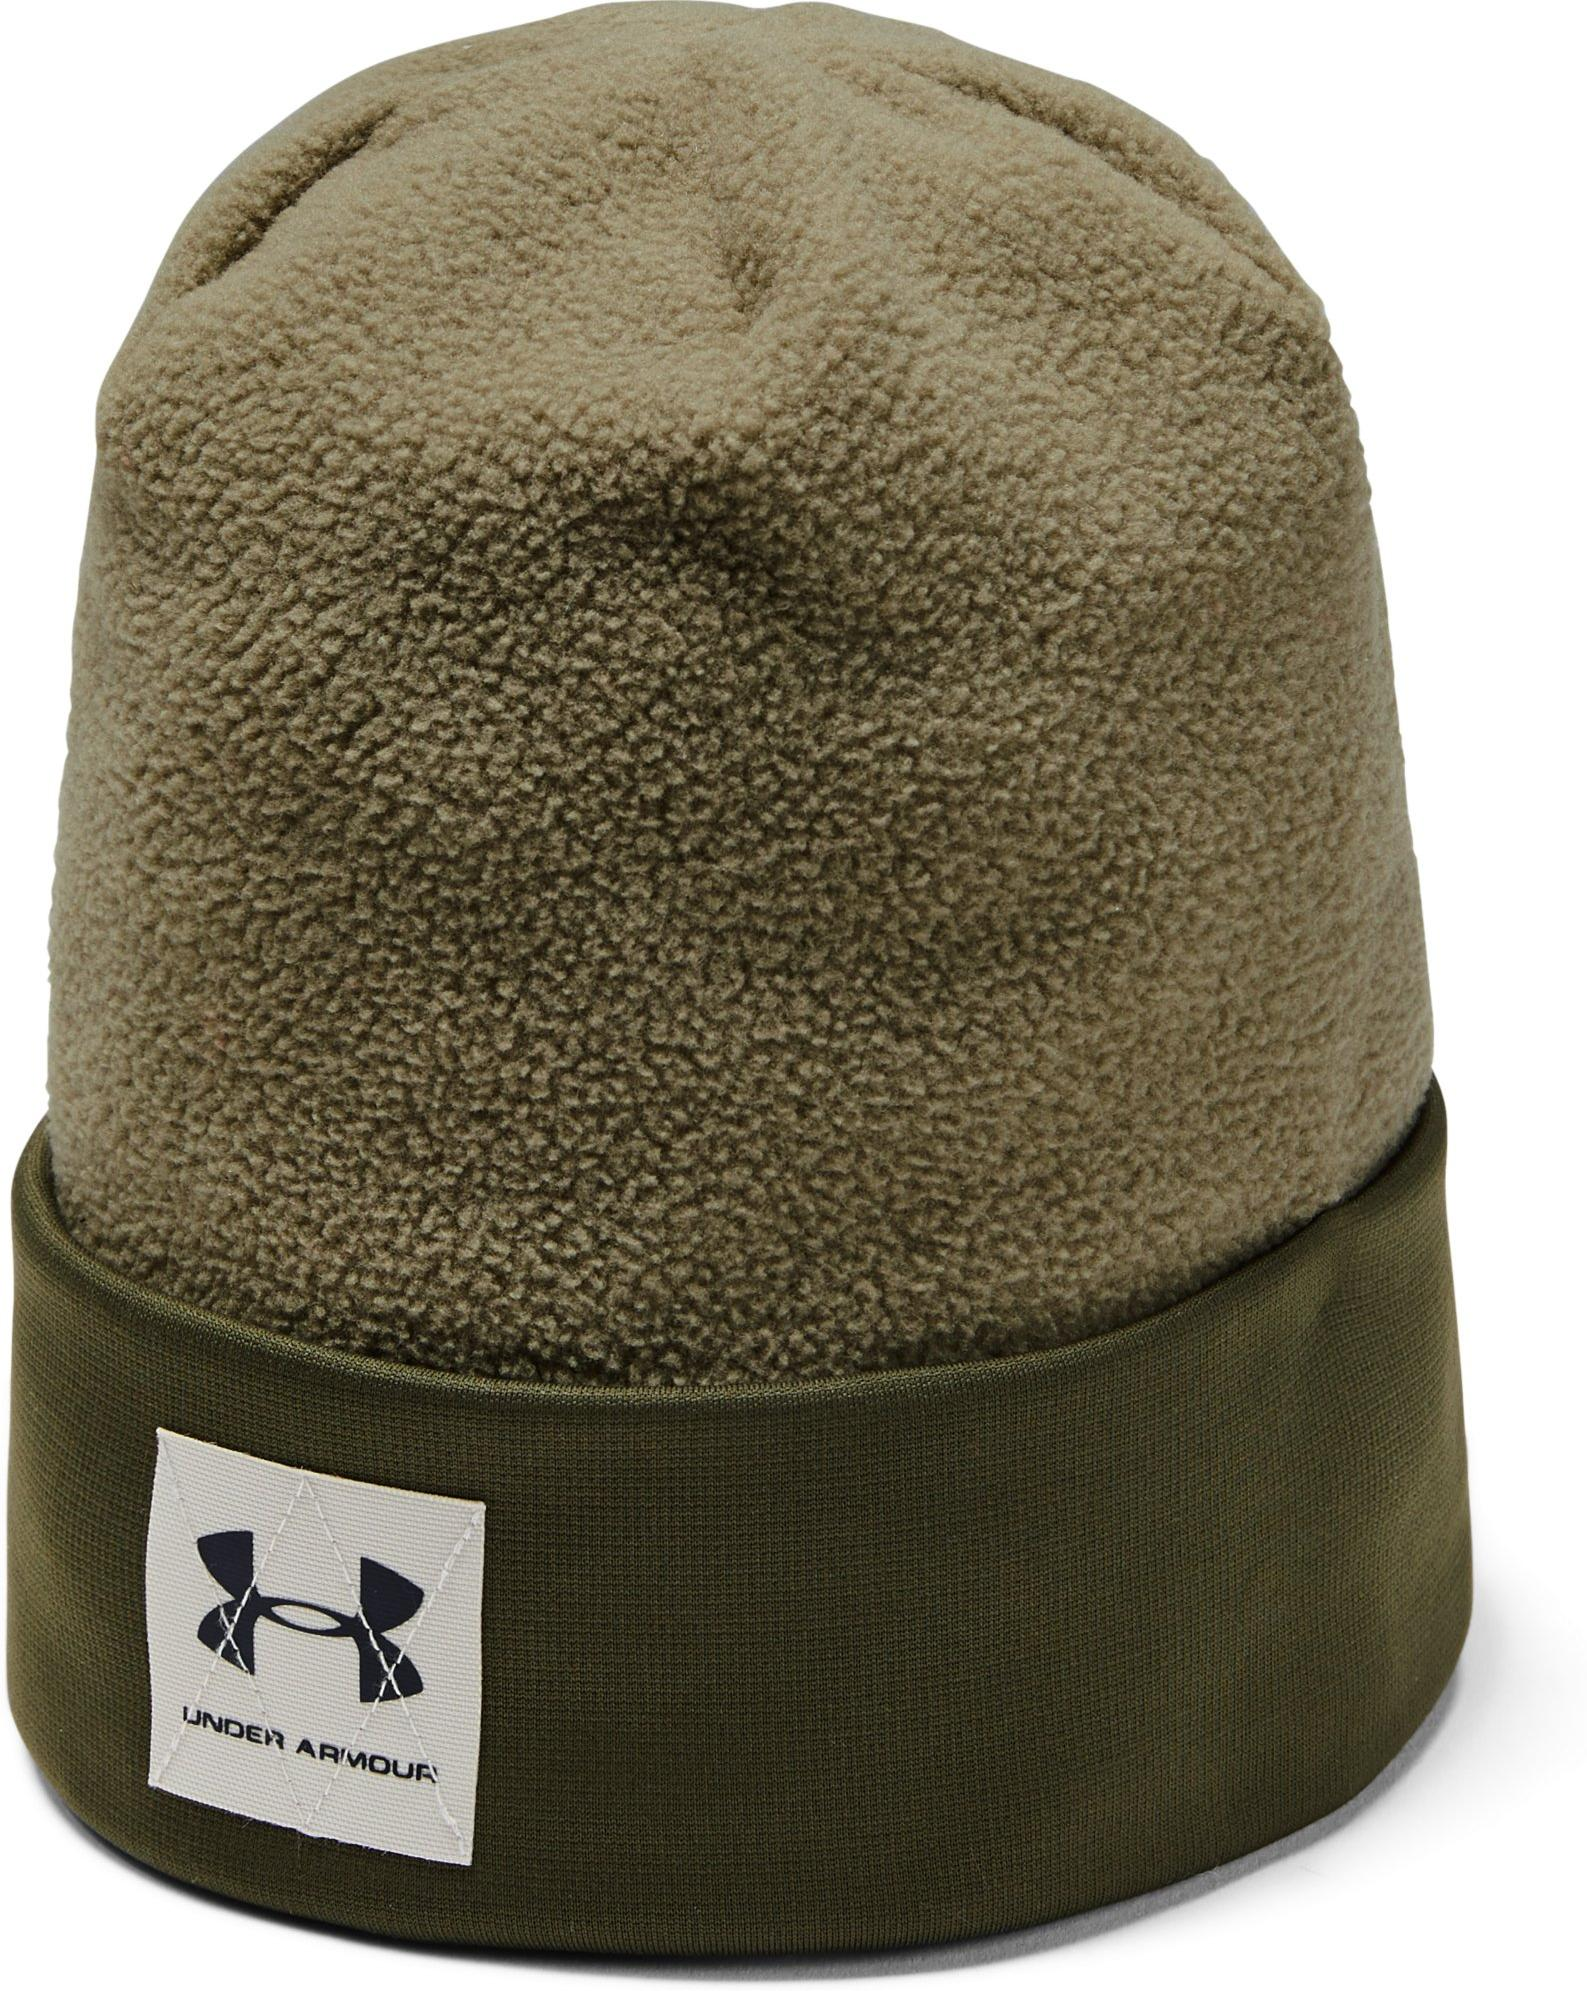 Under Armour Boy's Unstoppable Fleece Beanie Sapka